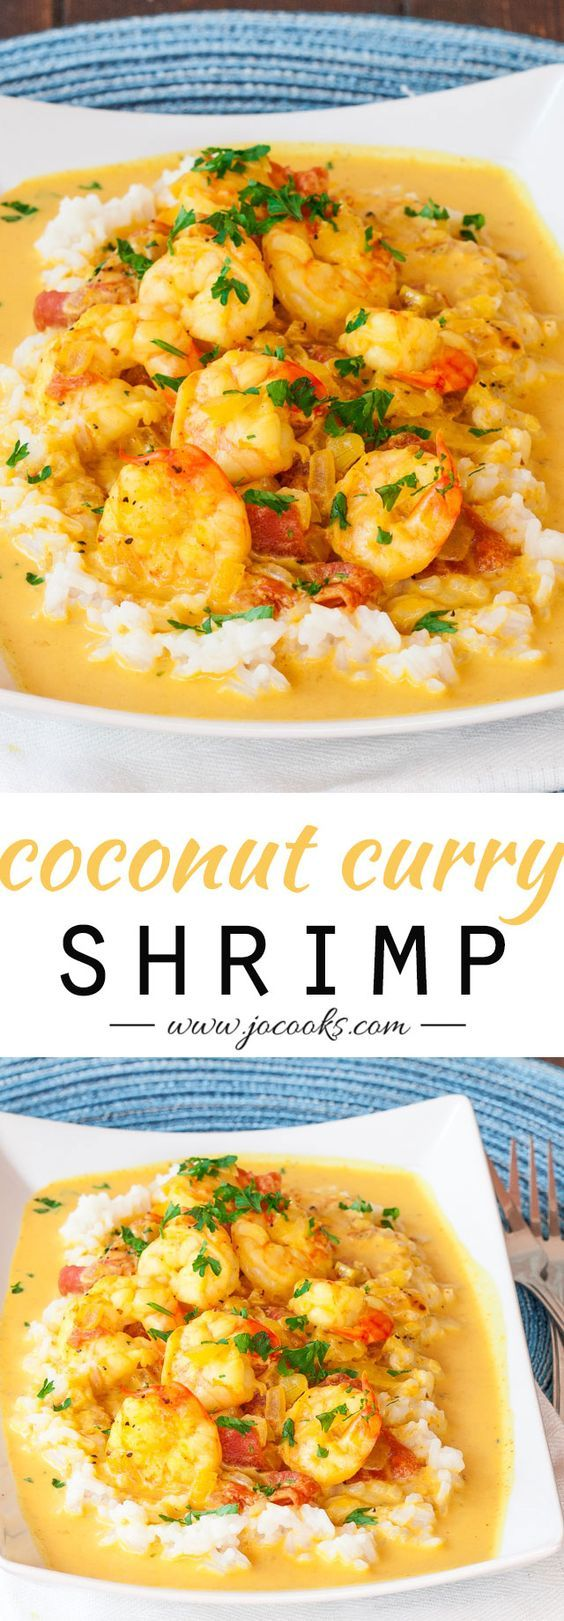 Coconut Shrimp Curry Recipe plus 24 more of the most popular pinned Paleo recipes